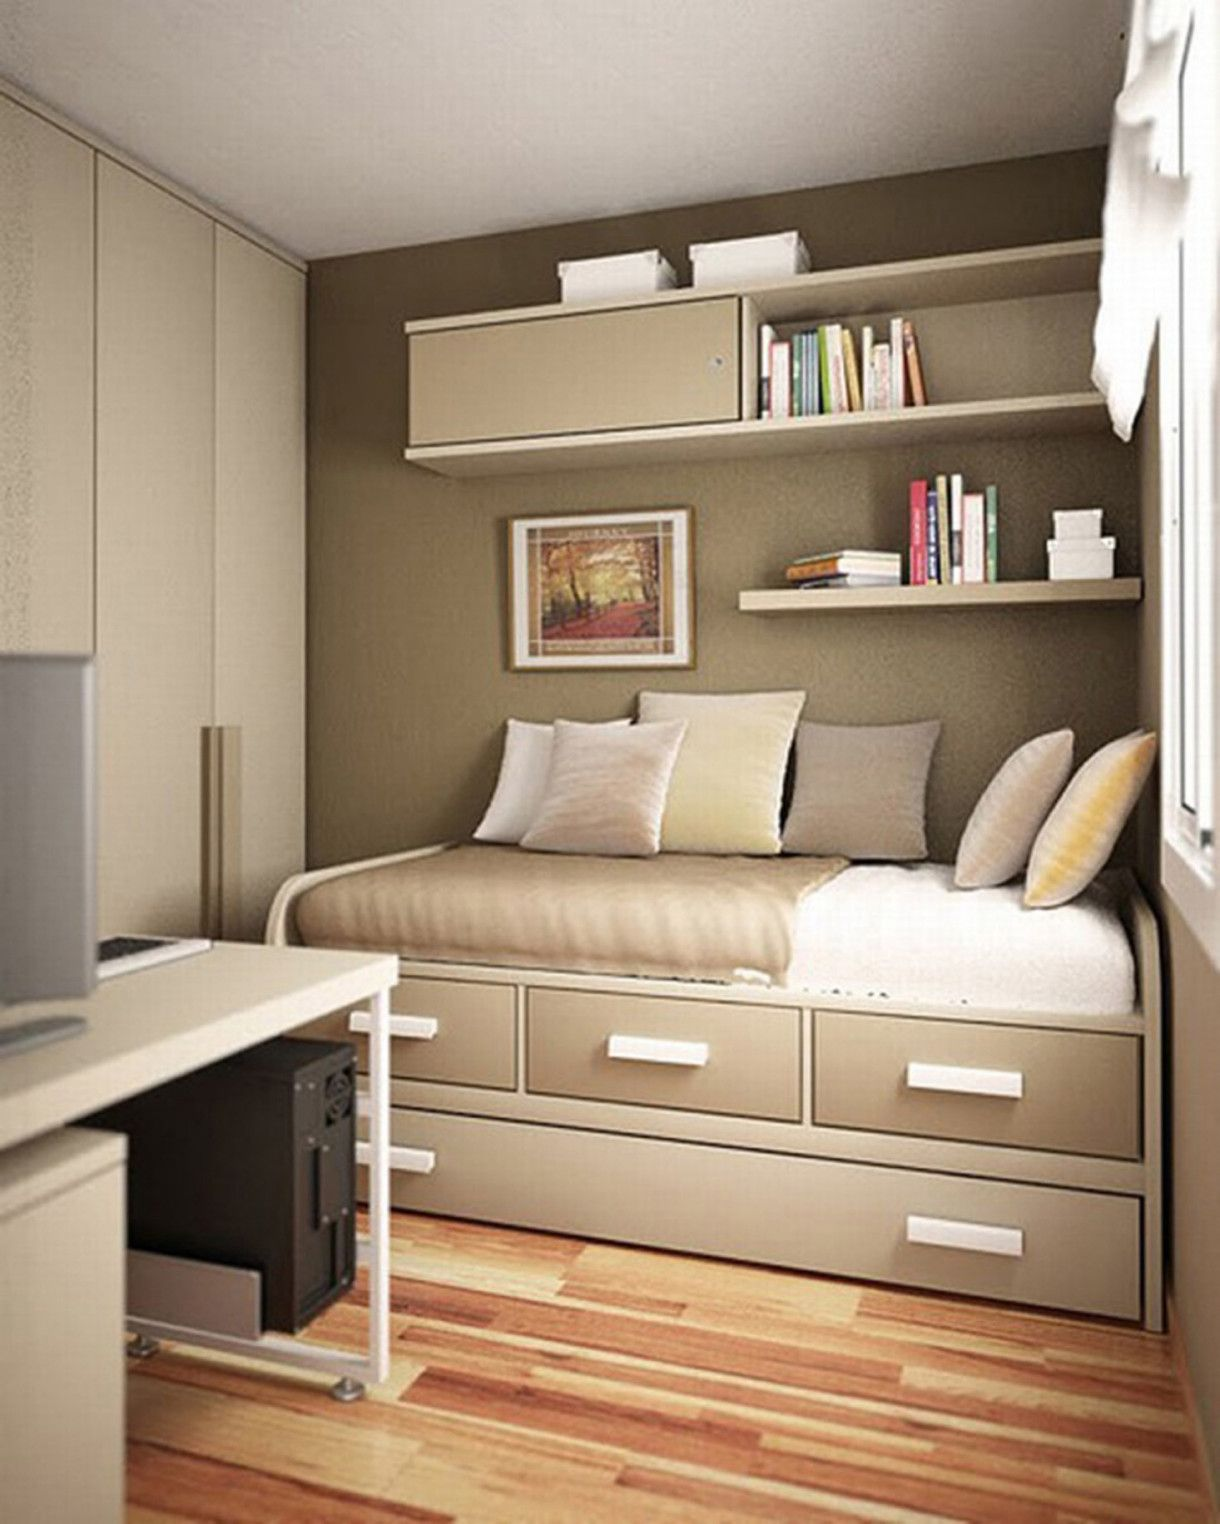 Cool Small Efficiency Apartment Interior With Long Narrow